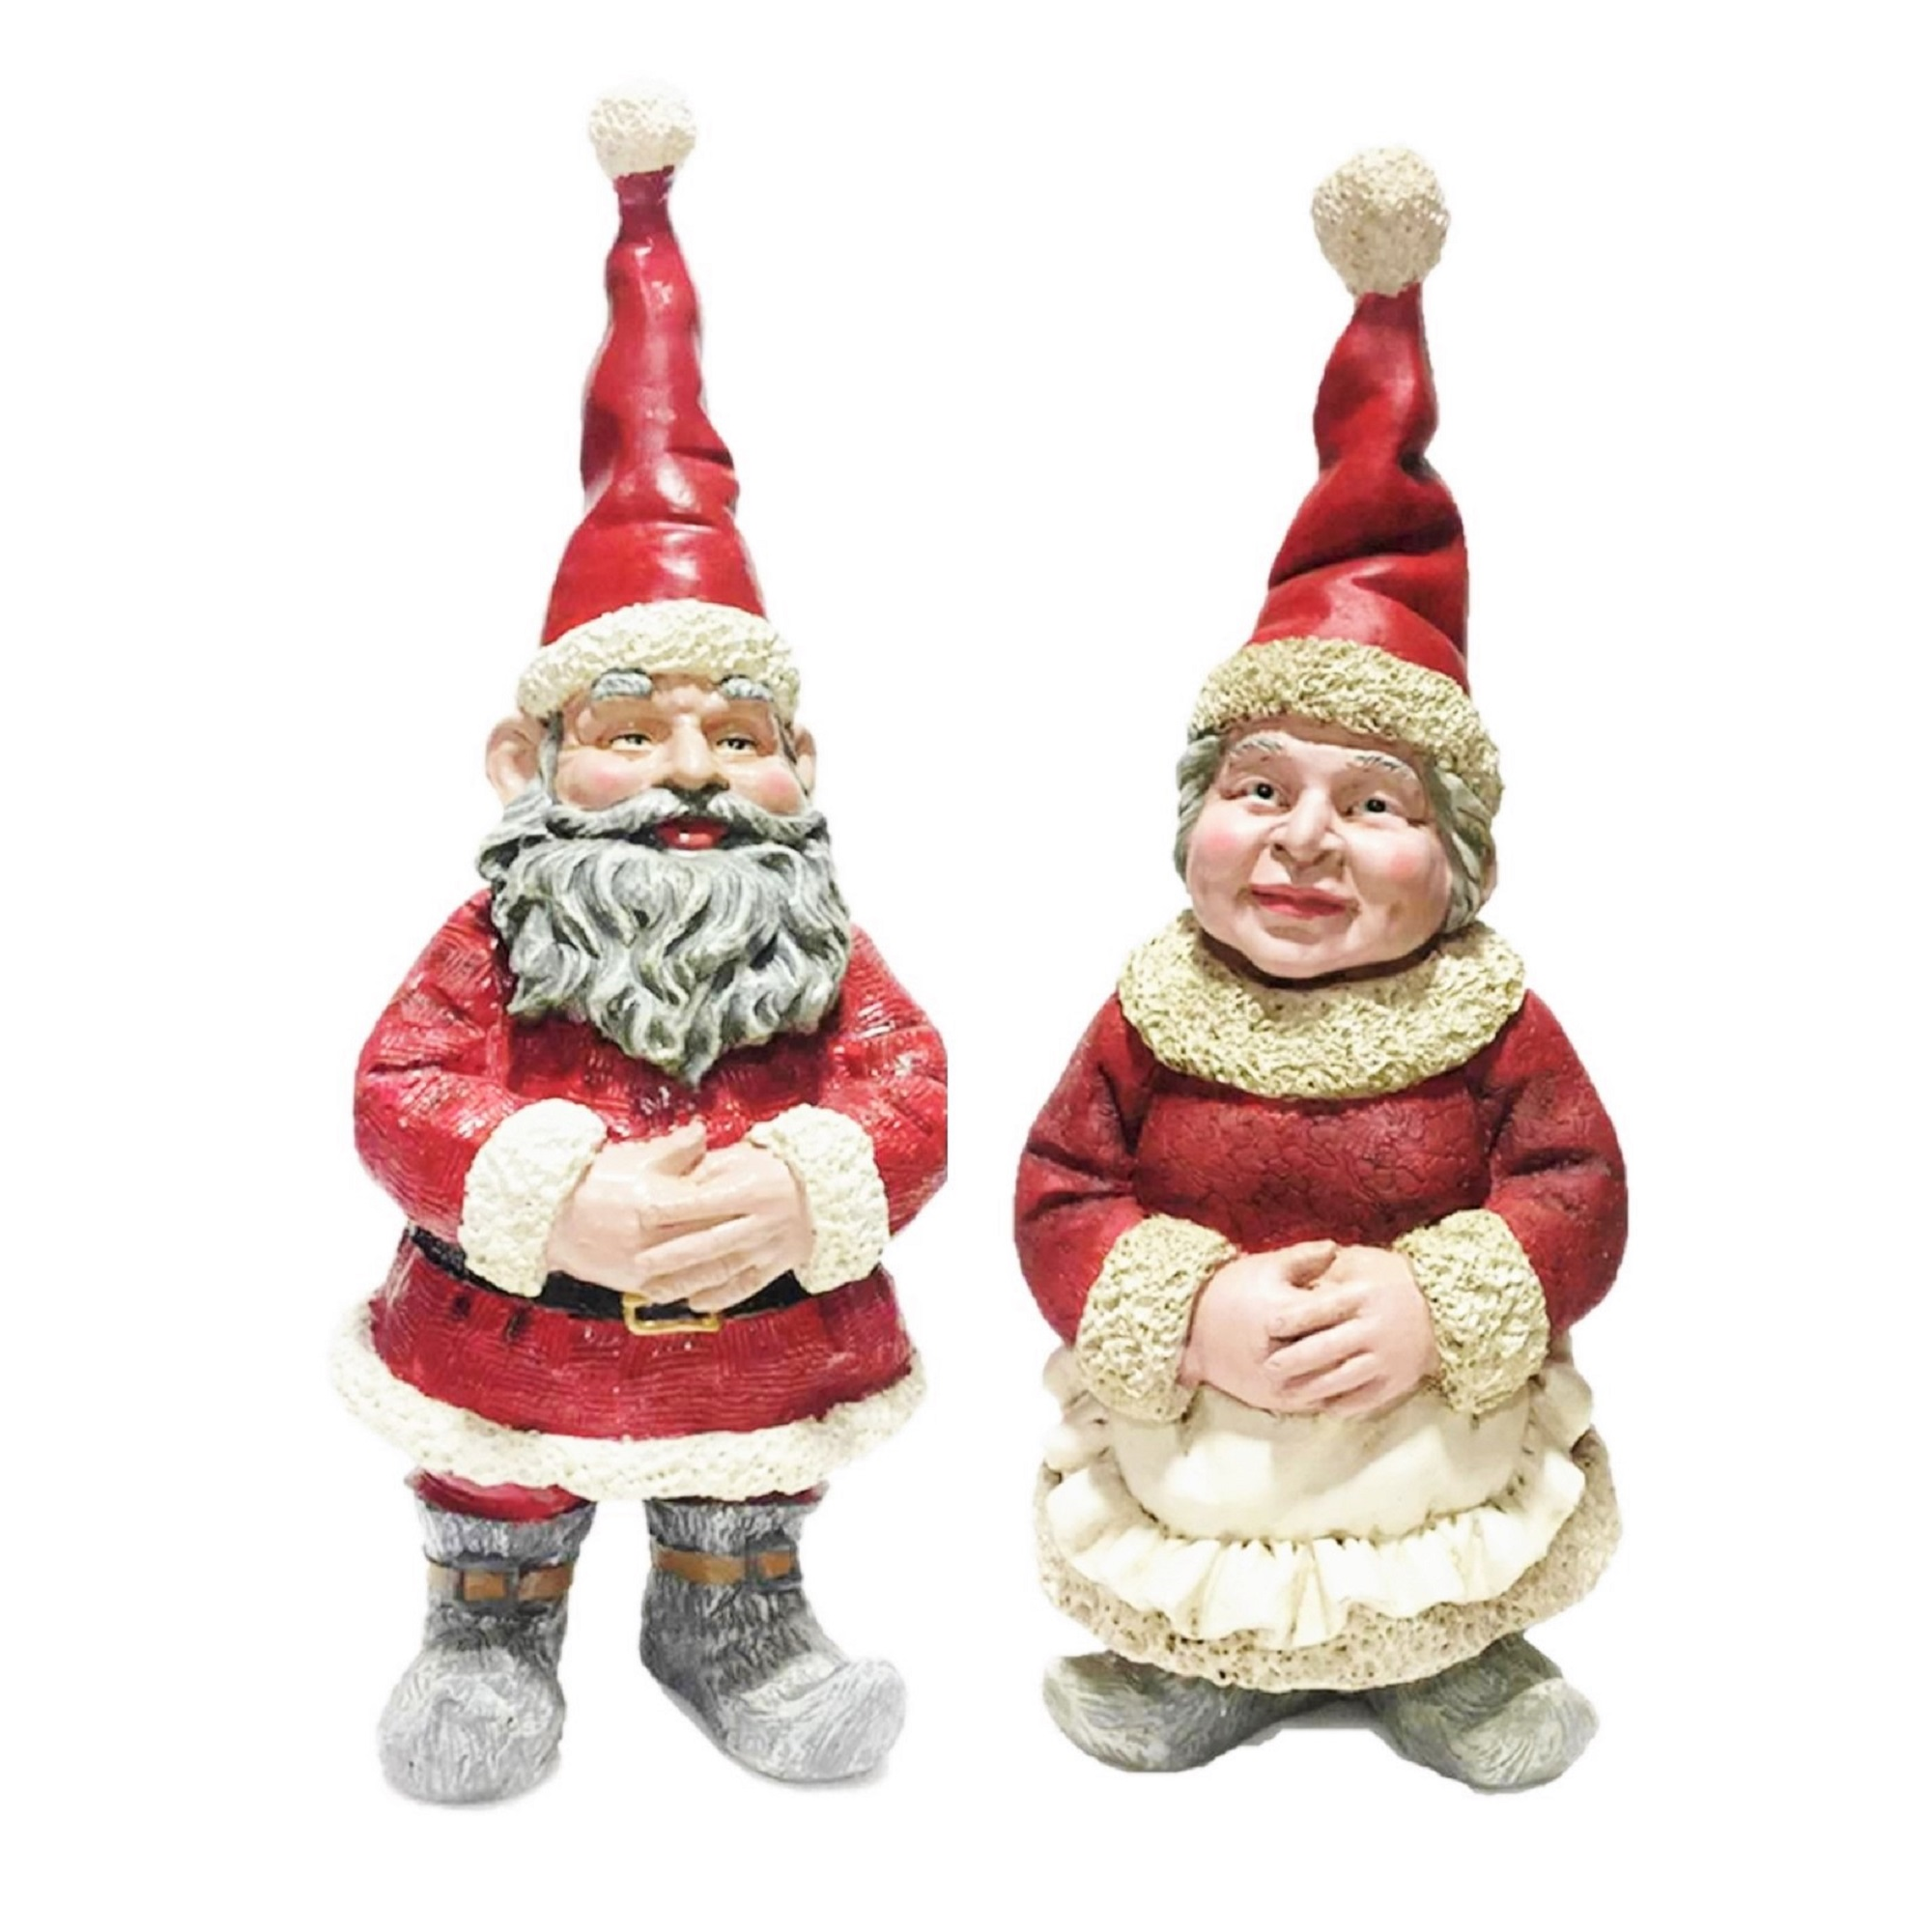 Homestyles Christmas Santa Claus & Mrs. Claus in Santa Suit and Holiday Cooking Apron Garden Gnome Statue by GSI Homestyles